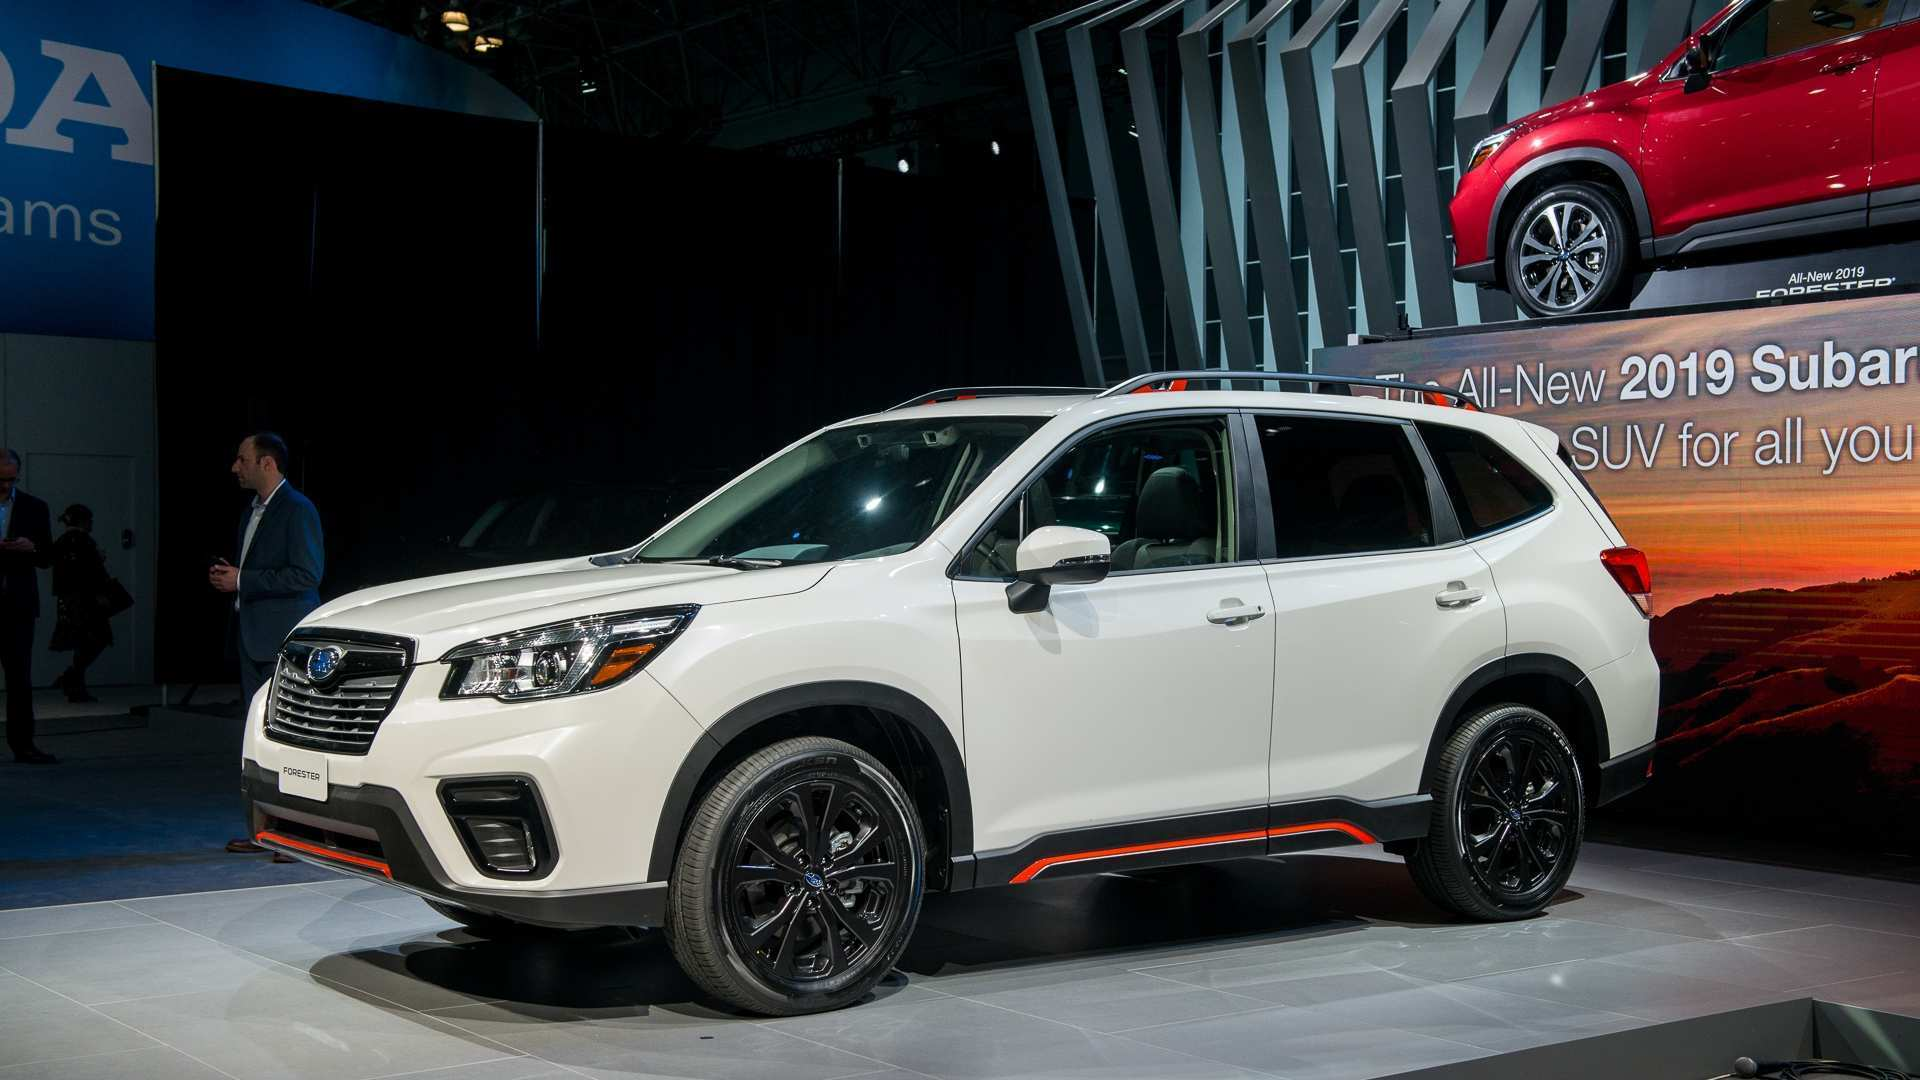 15 Concept of 2019 Subaru Forester Design Exterior for 2019 Subaru Forester Design